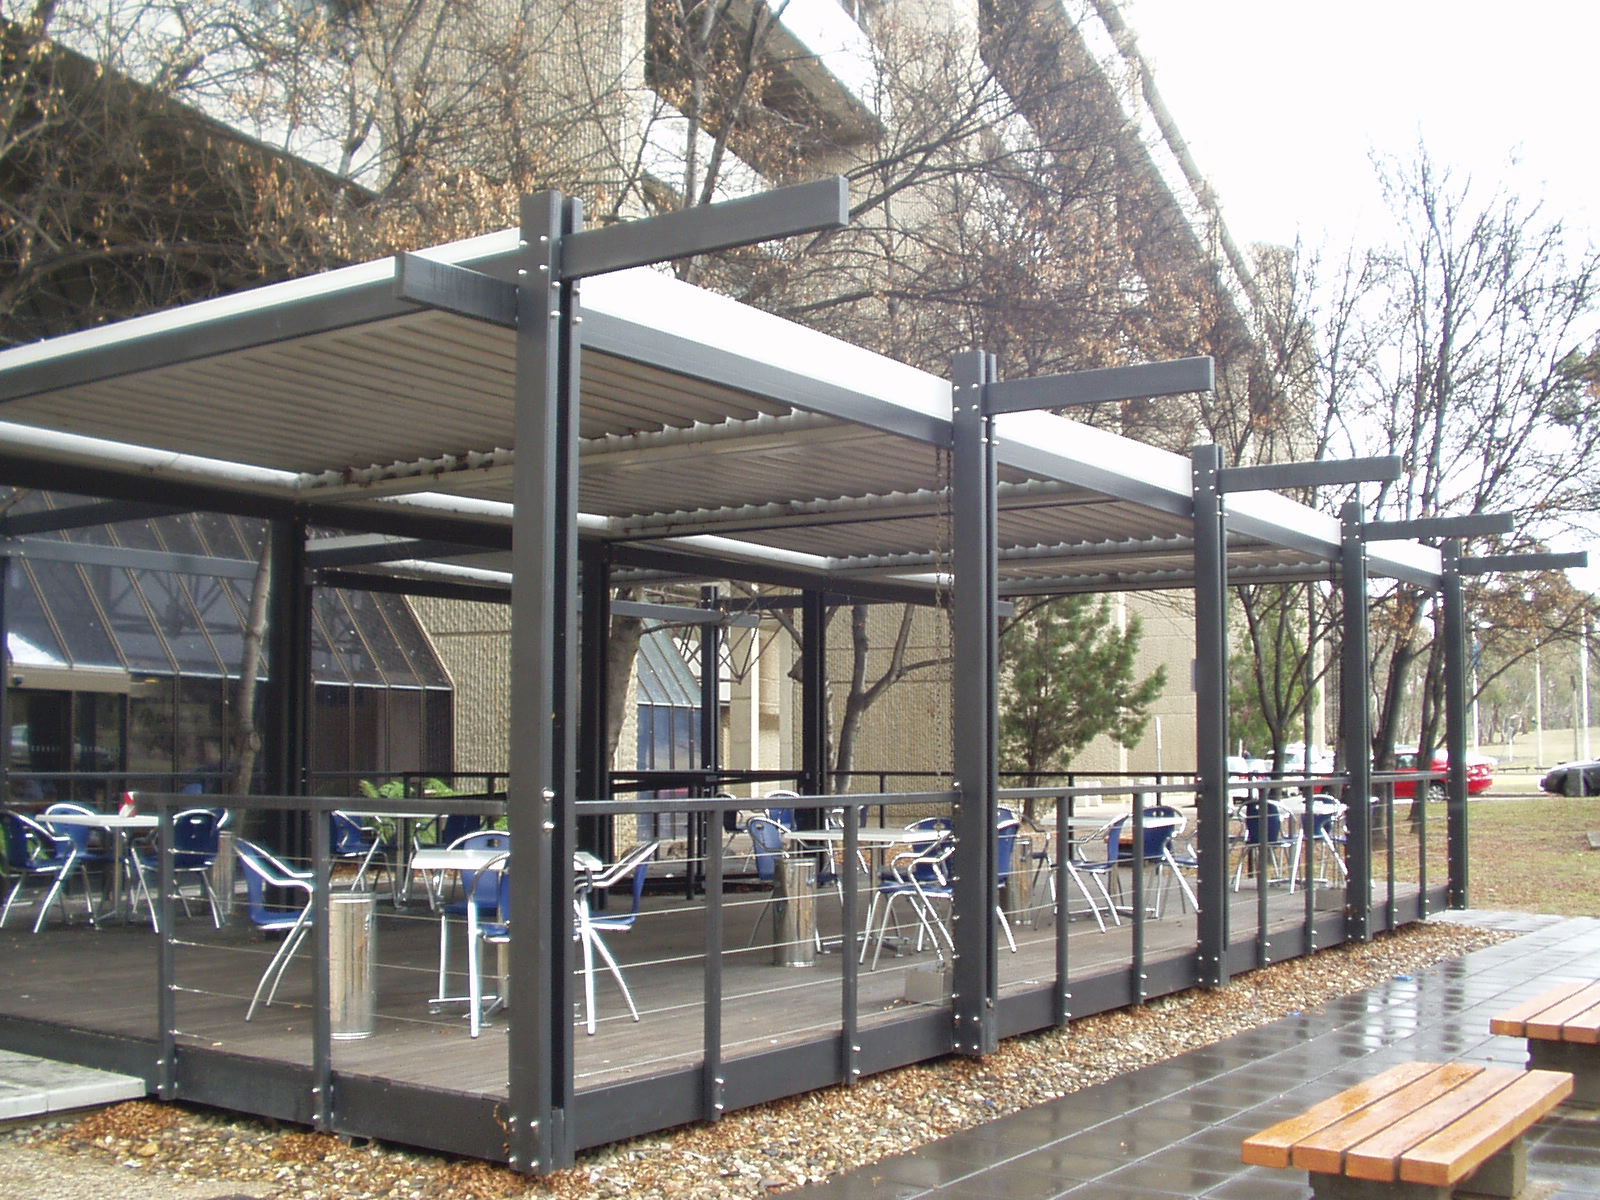 Commercial - The control and versatility offered by Vergola® can help to maximise your customer experience.Vergola® can be a valuable and versatile outdoor solution for restaurants and cafes, university campus, school playgrounds, clubs, science and technology parks, sports facilities, pool decks on boats, hospitals are just some of the places Vergola® has been installed Australia-wide.